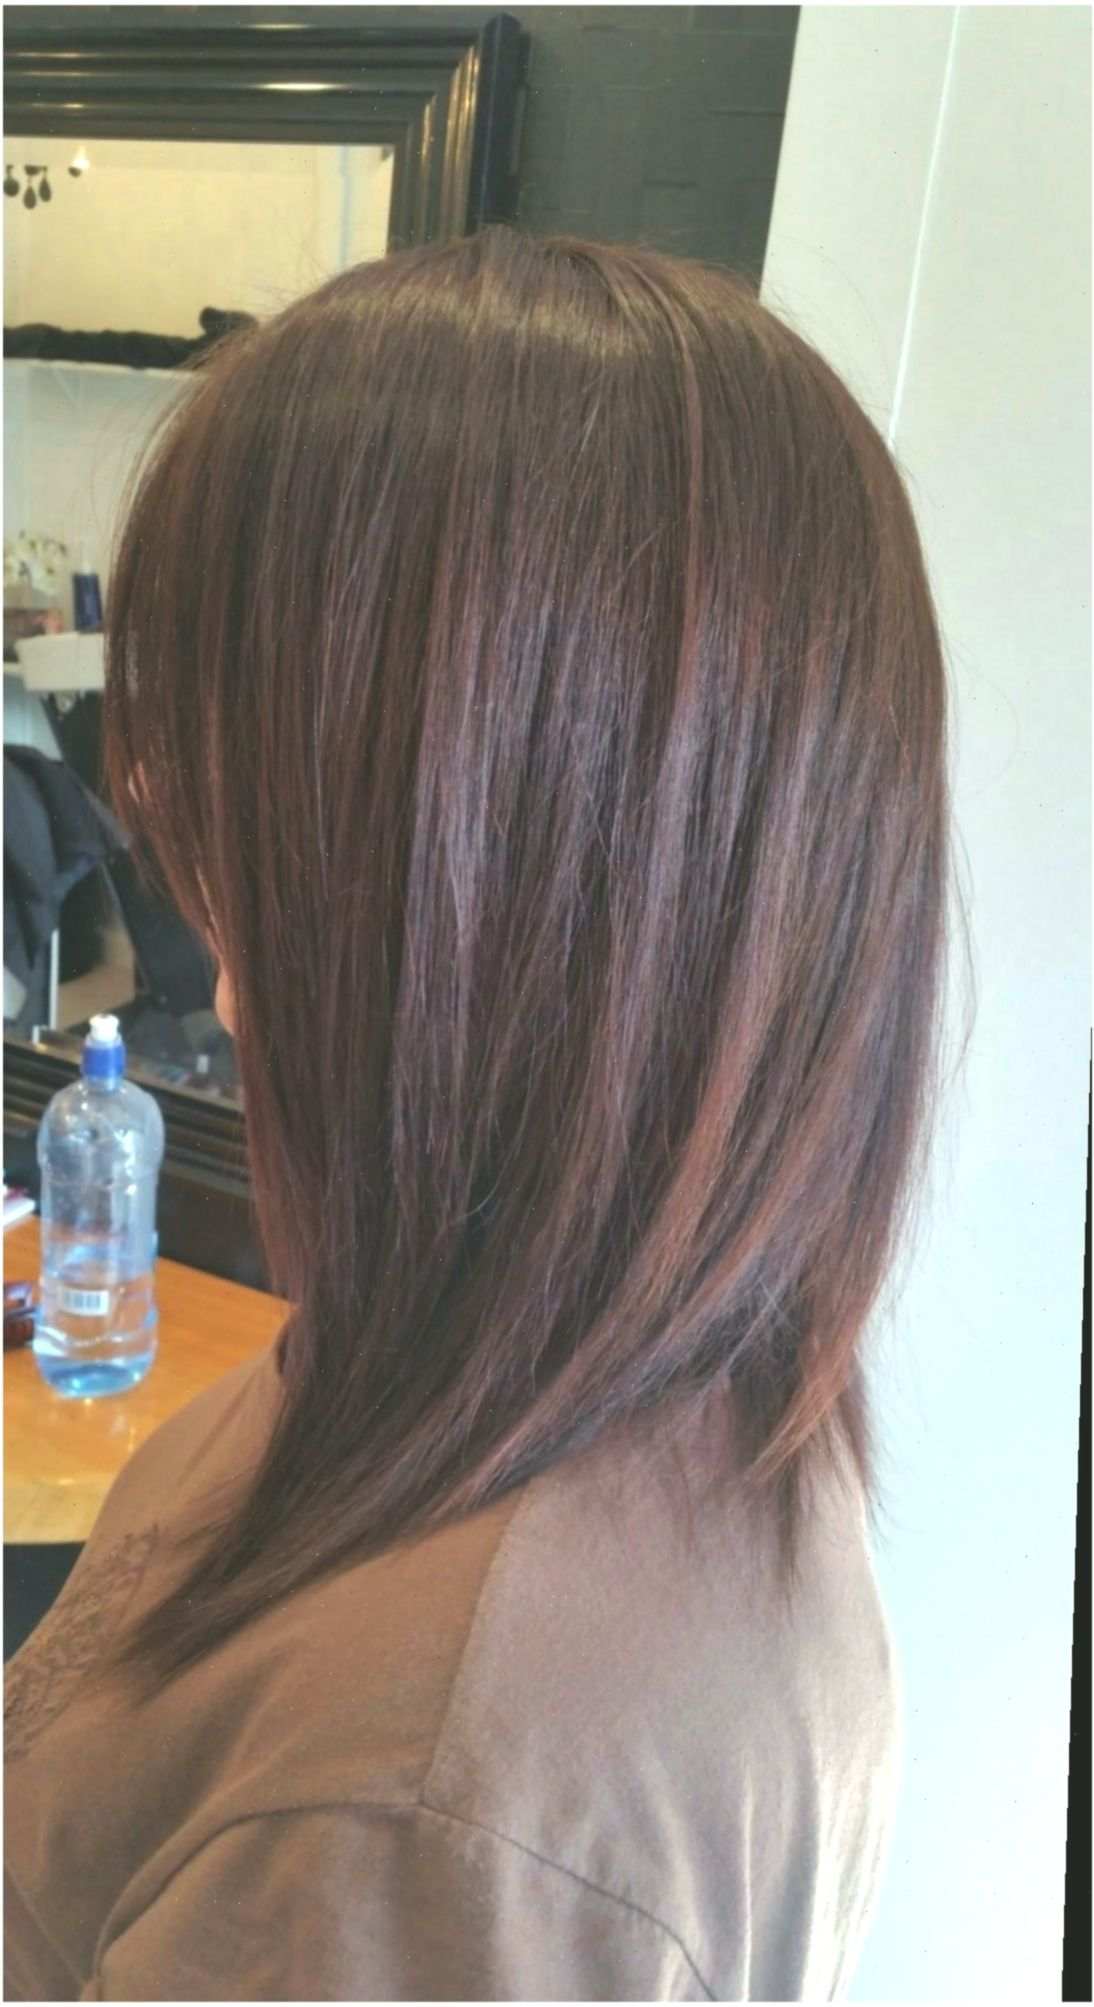 ✓ Hairstyles For Medium Length Hair Korean Long Bobs #reddress